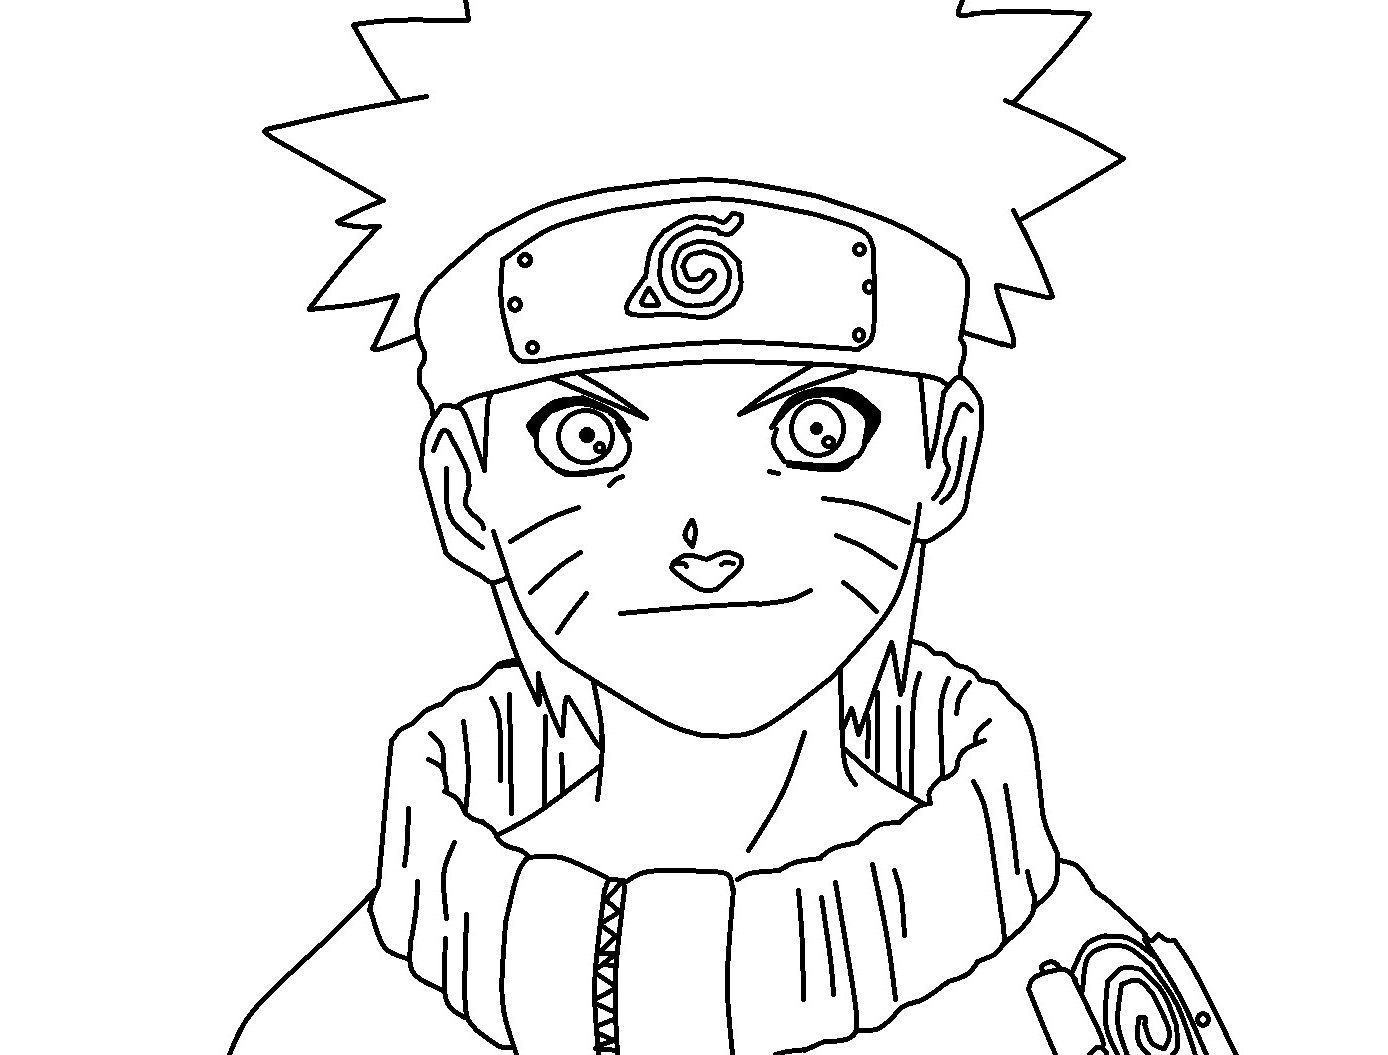 Naruto coloring pages embroidery pinterest naruto and